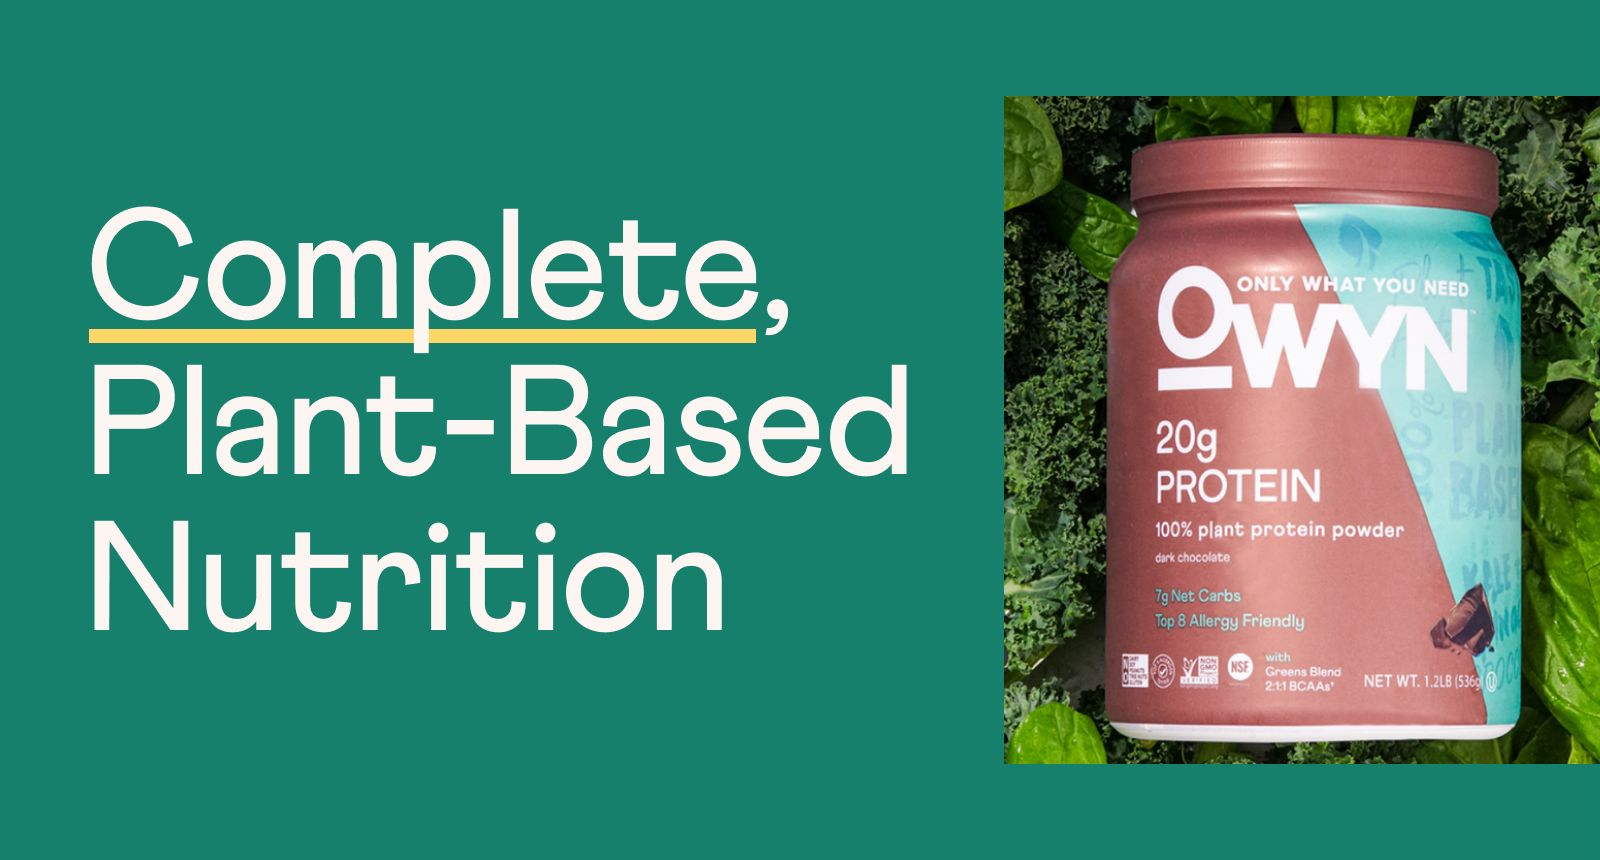 Complete, plant-based nutrition.